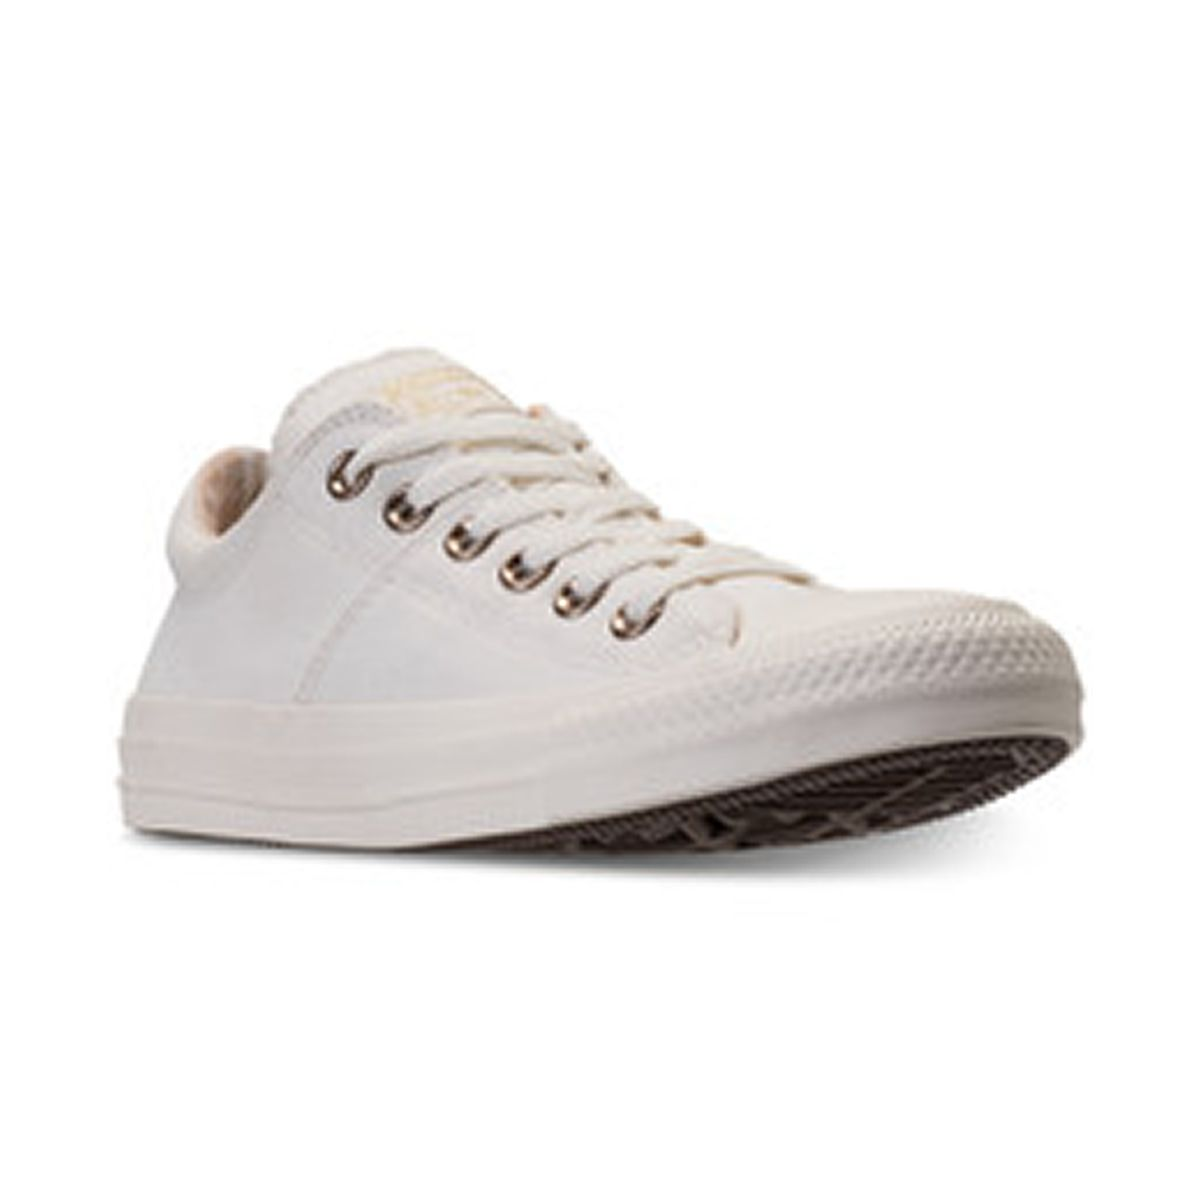 Converse Finish Line Athletic Shoes - Macy s 93018c1ee